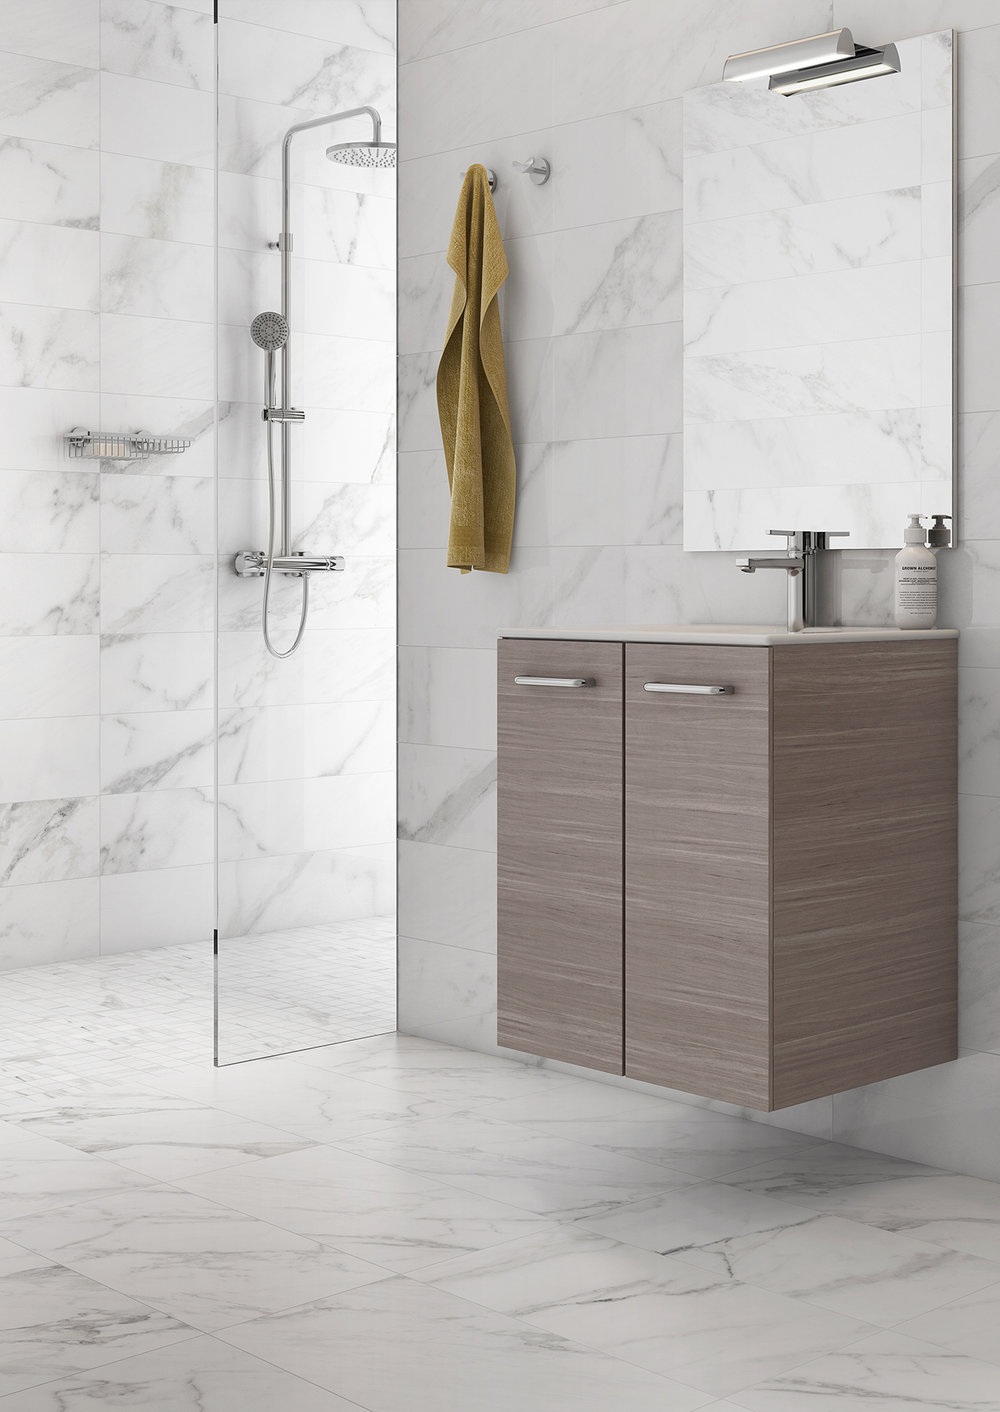 ASTER WALL-MOUNT VANITY WITH DOORS  GREY WOOD VENEER  - Finish: Textured MelamineDesign: Grey Wood VeneerWall-mounted24